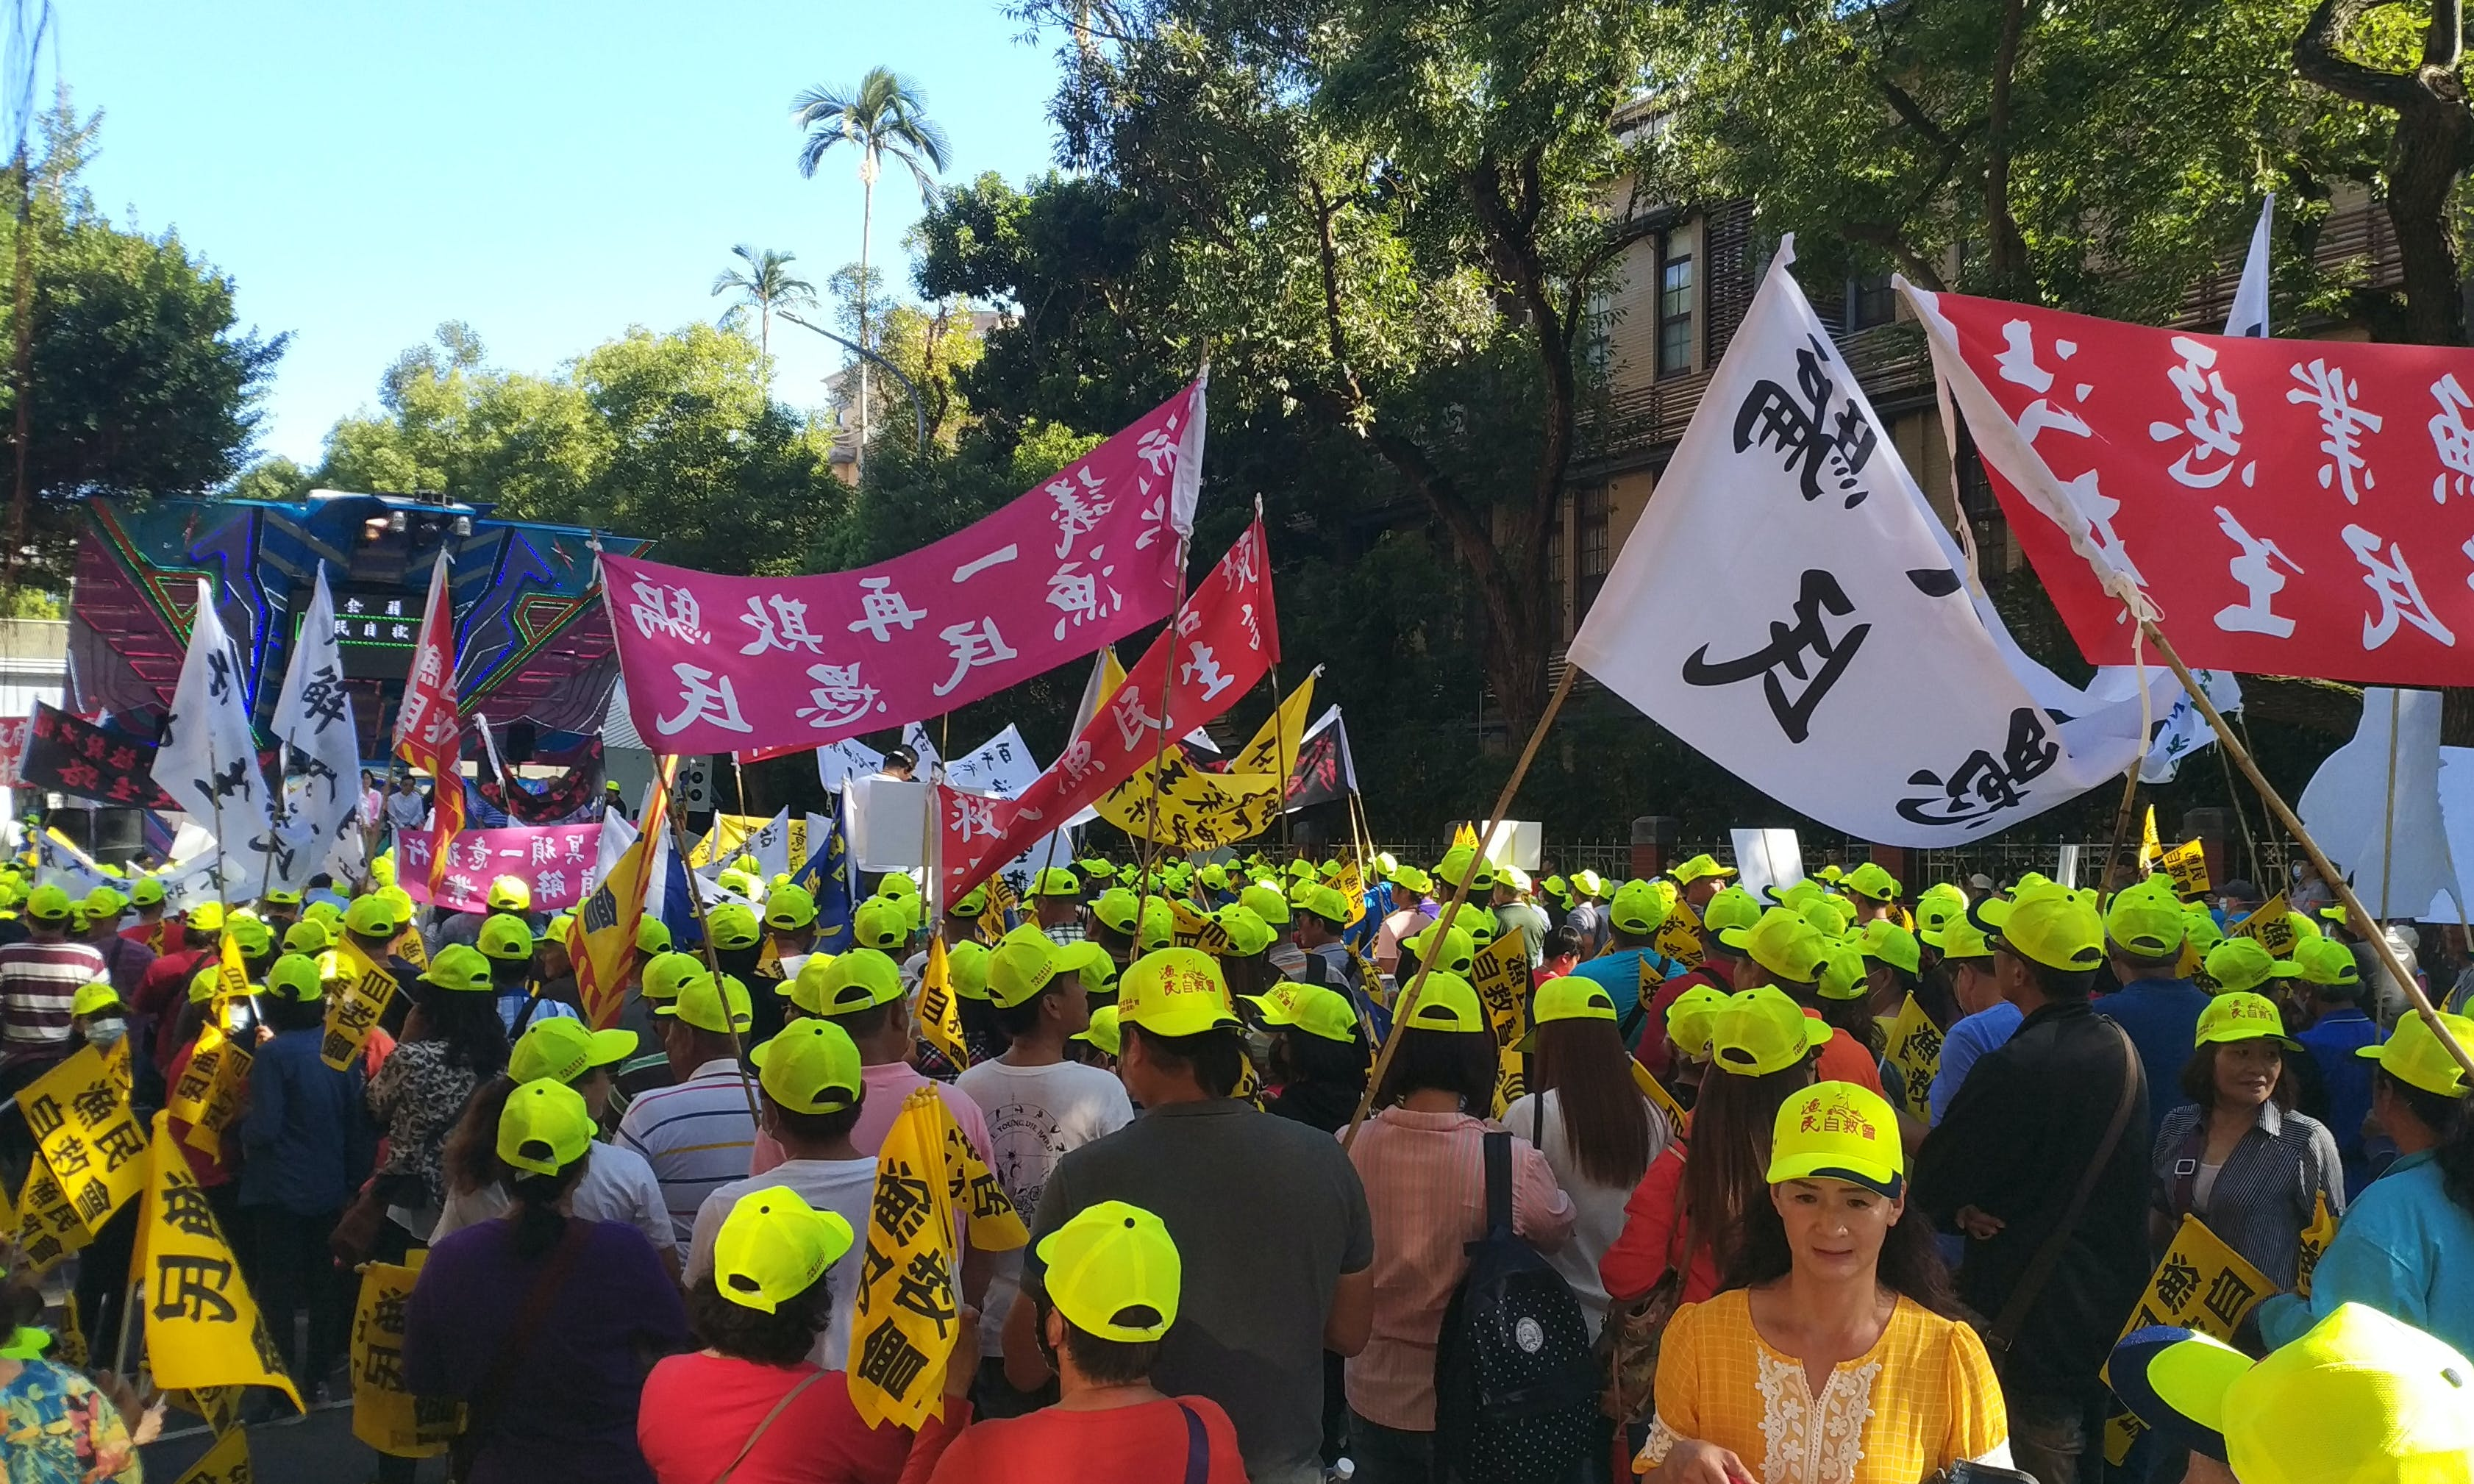 Taiwan's Fishing Captains Protest in Defense of Embattled Industry